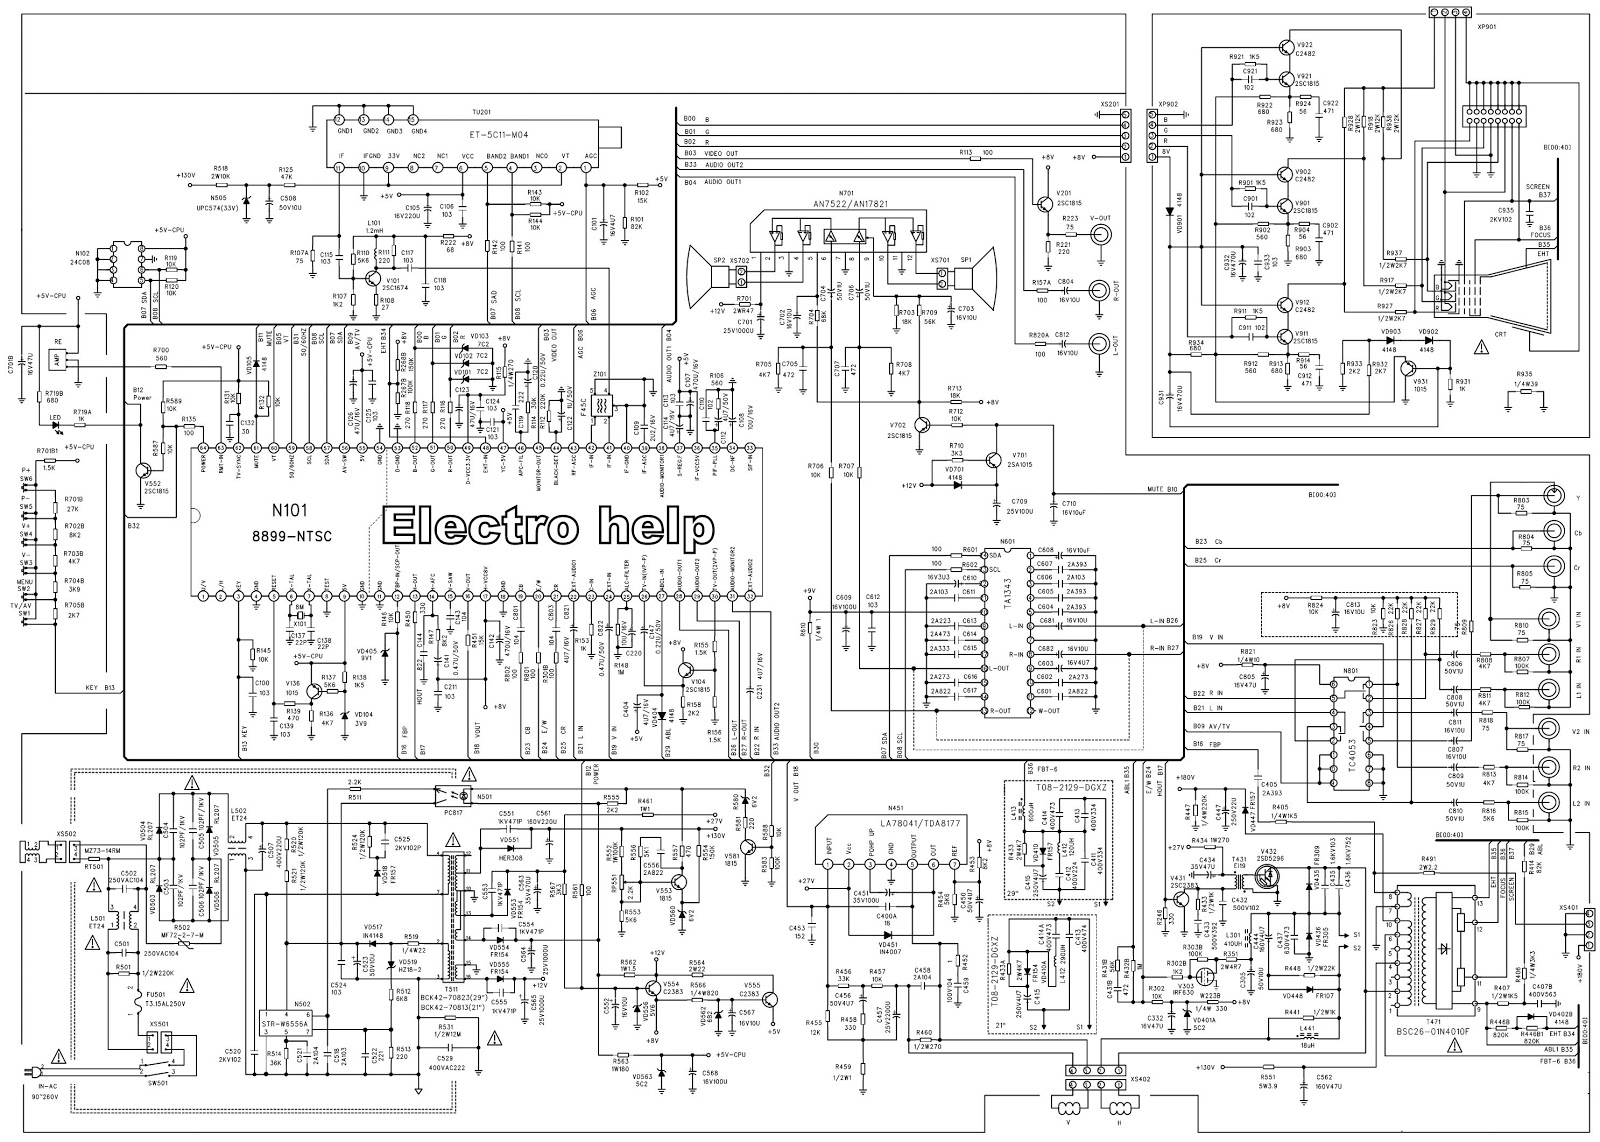 will draw electronic circuit diagrams for 5